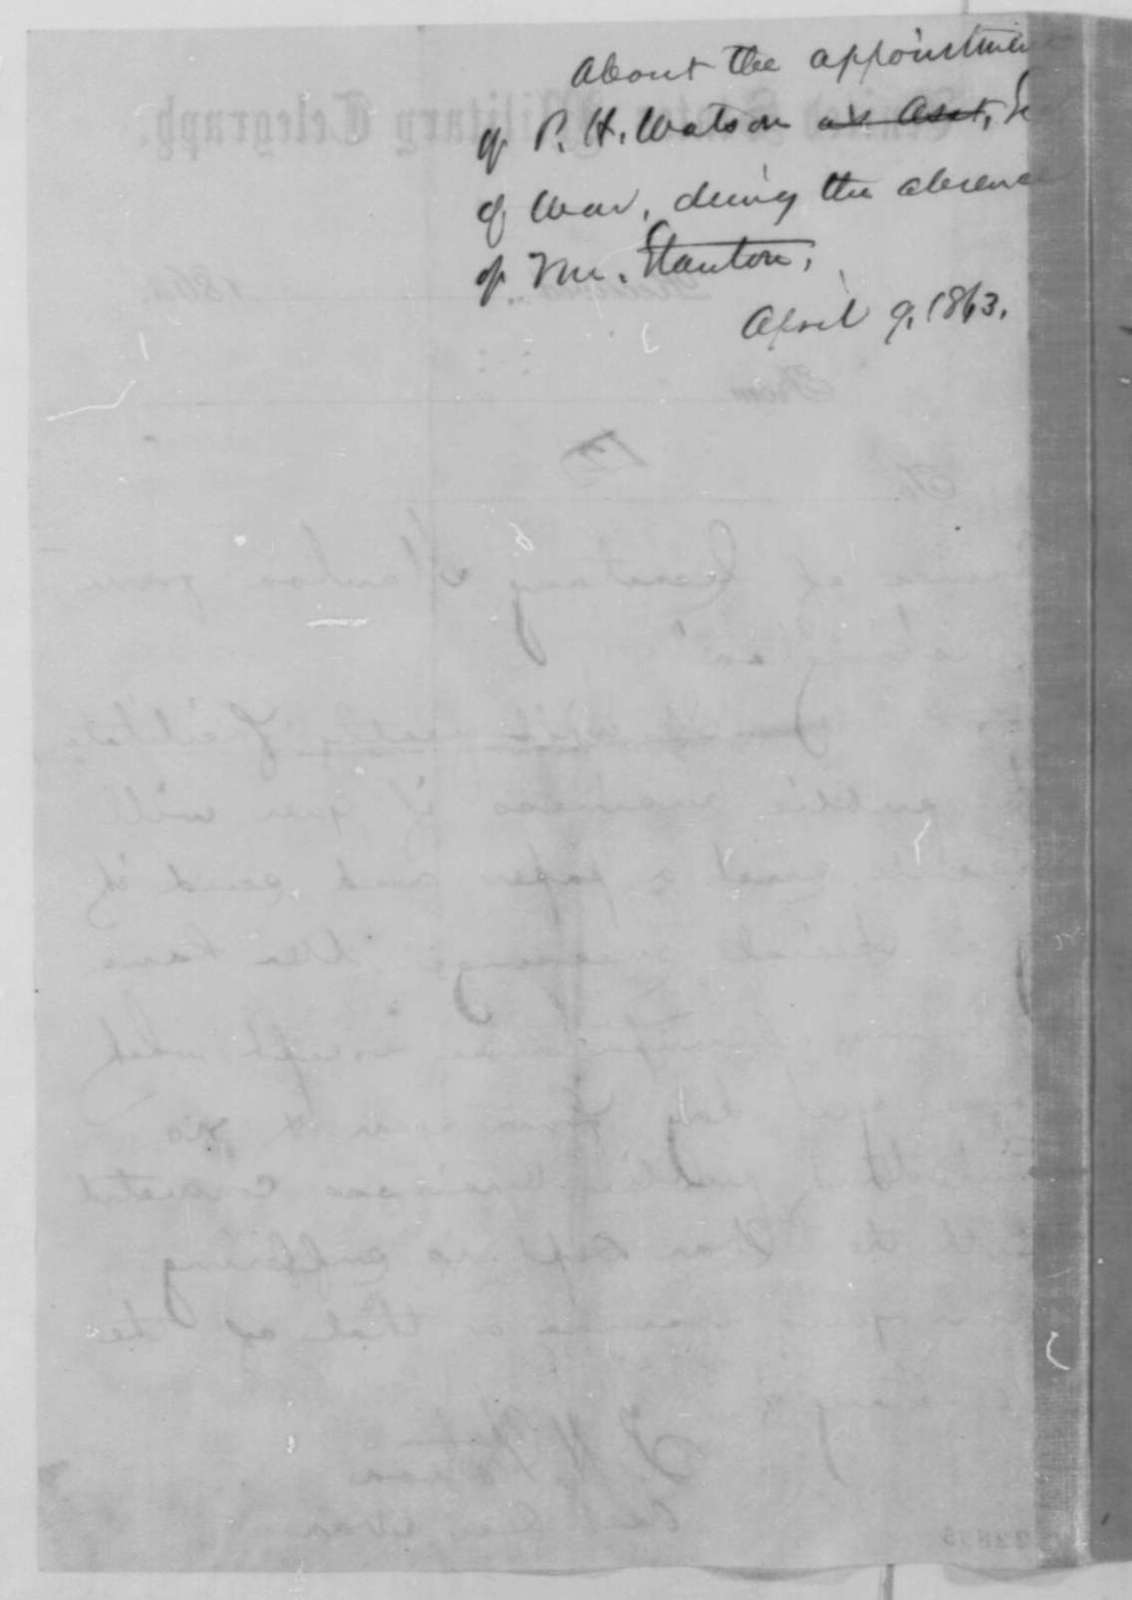 Peter H. Watson to Abraham Lincoln, Thursday, April 09, 1863  (Telegram requesting authorization to act as Secretary of War in Stanton's absence)